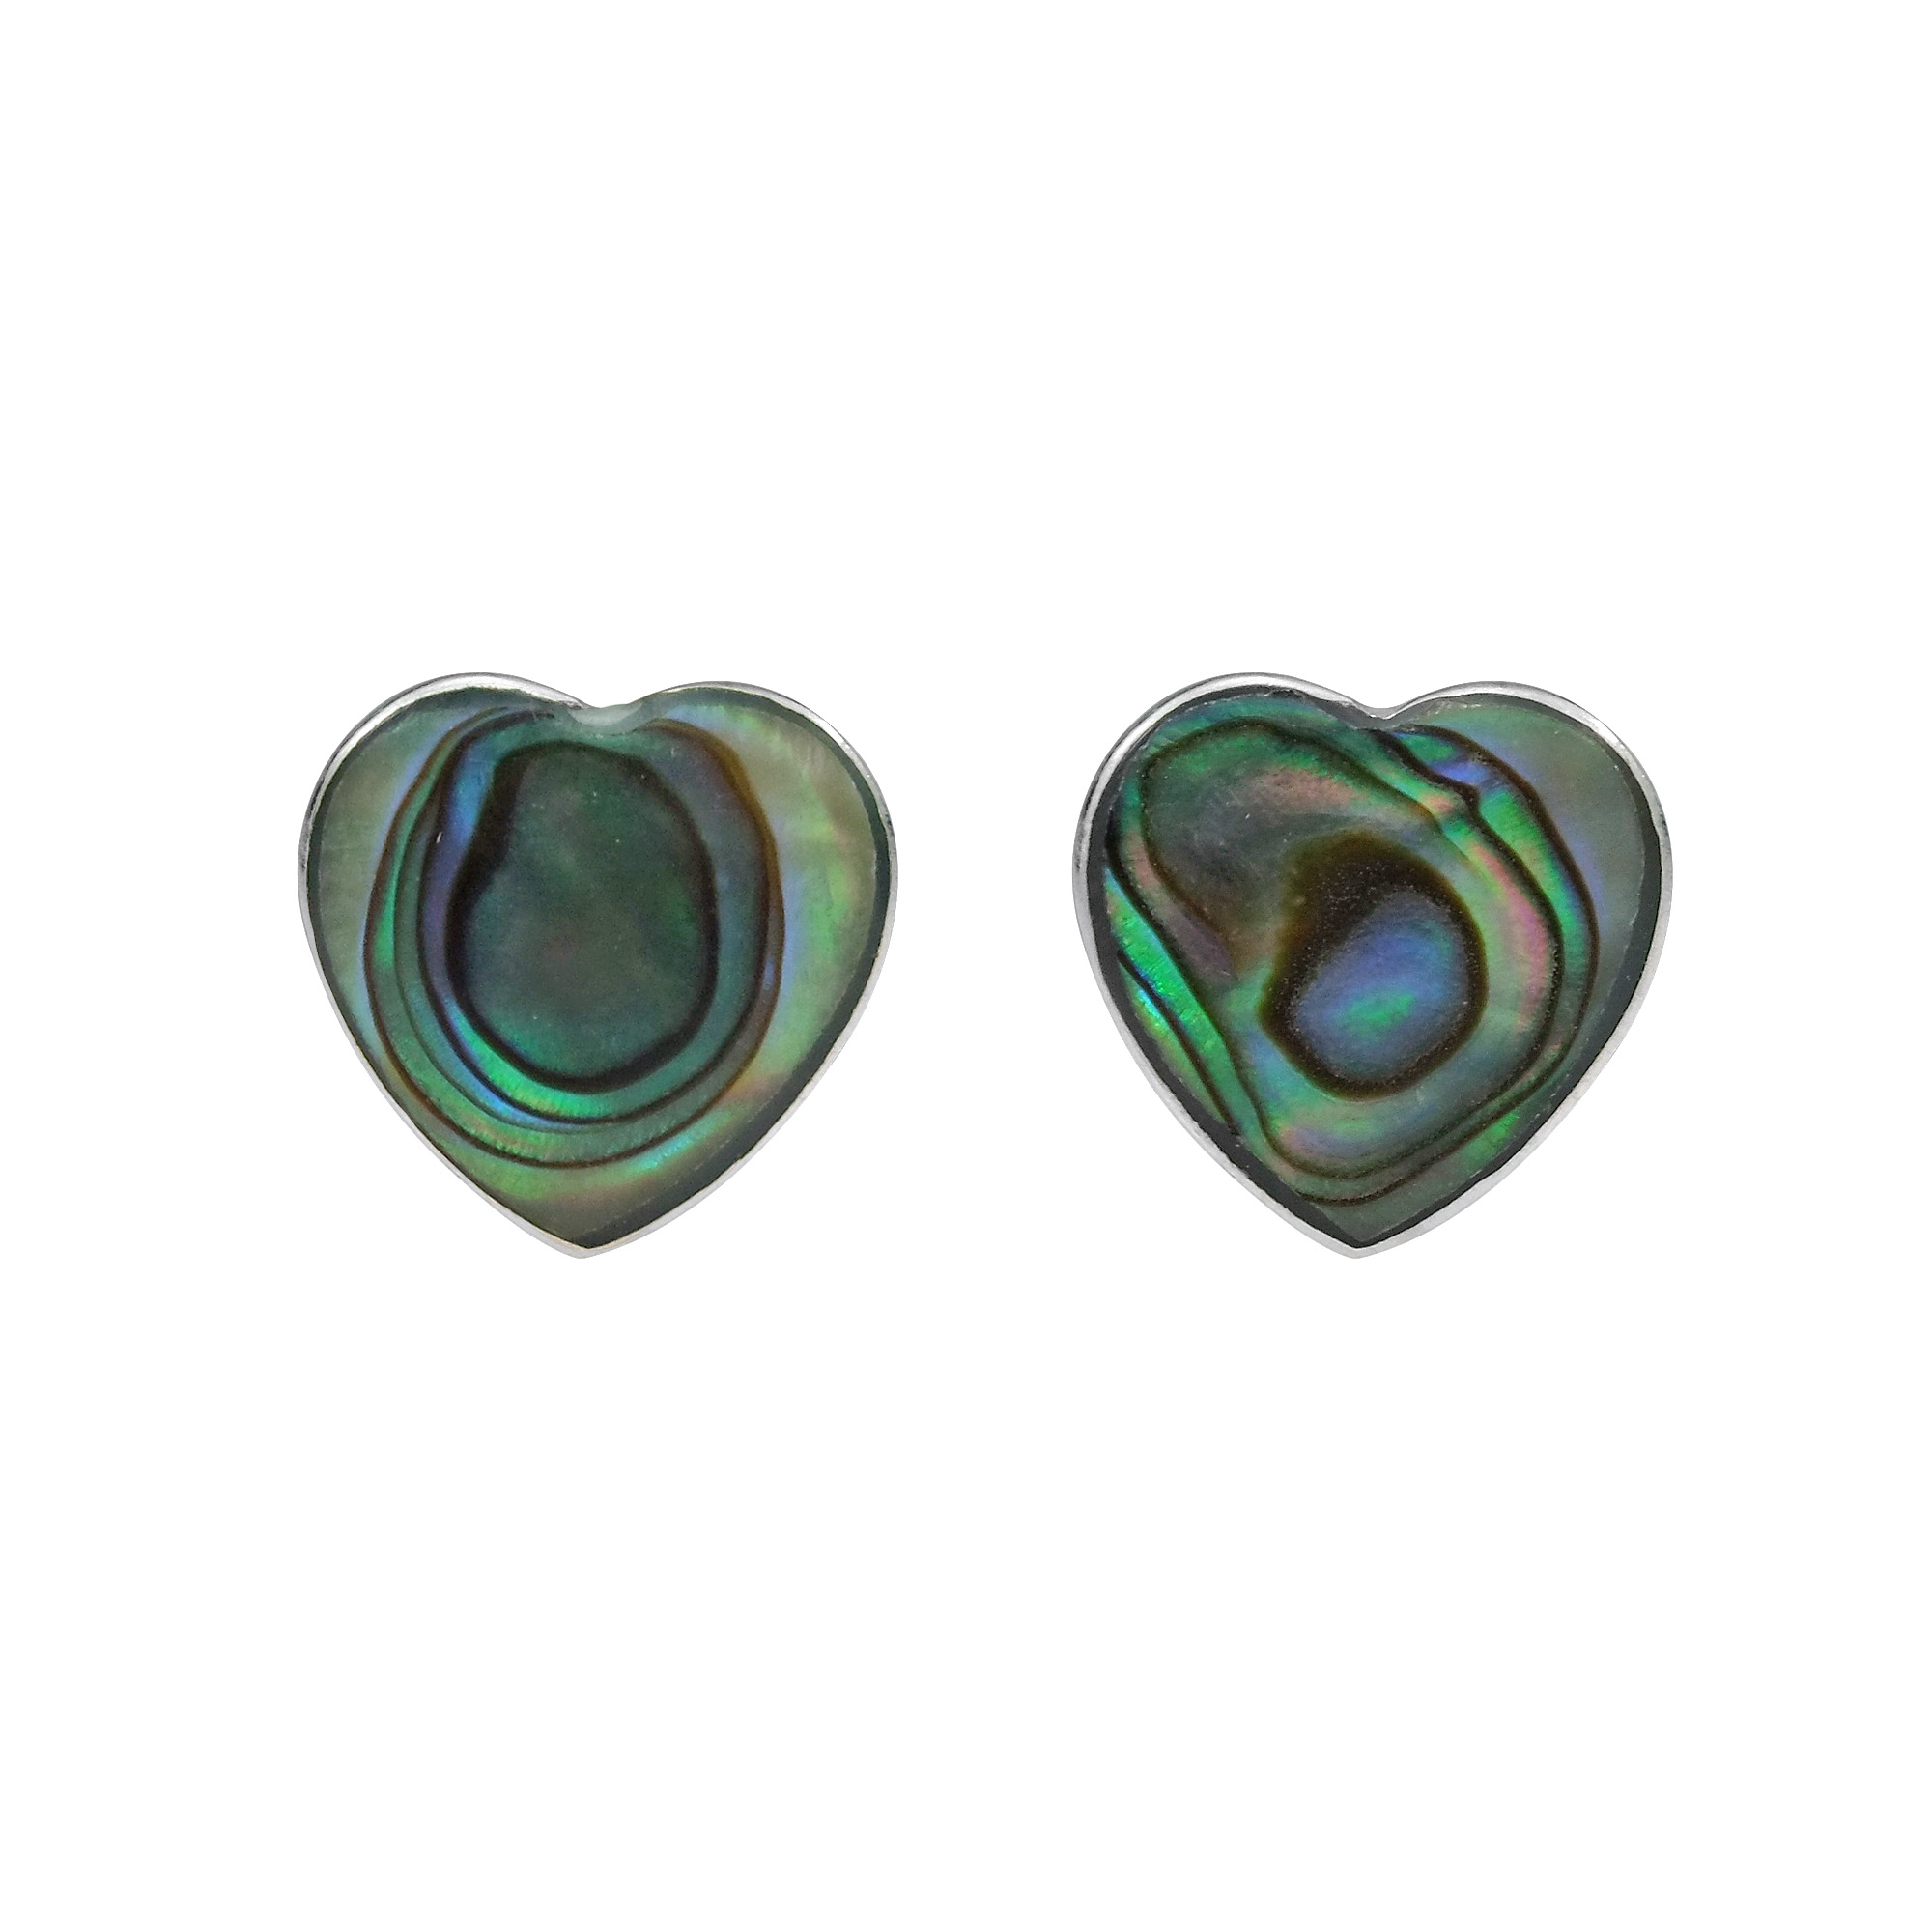 earrings round comes beautiful inlay khun square oval which designed stud sq products details accents piece inlaid and cute this se trendy stone in artisan silver aeravida abalone heart jai seashell